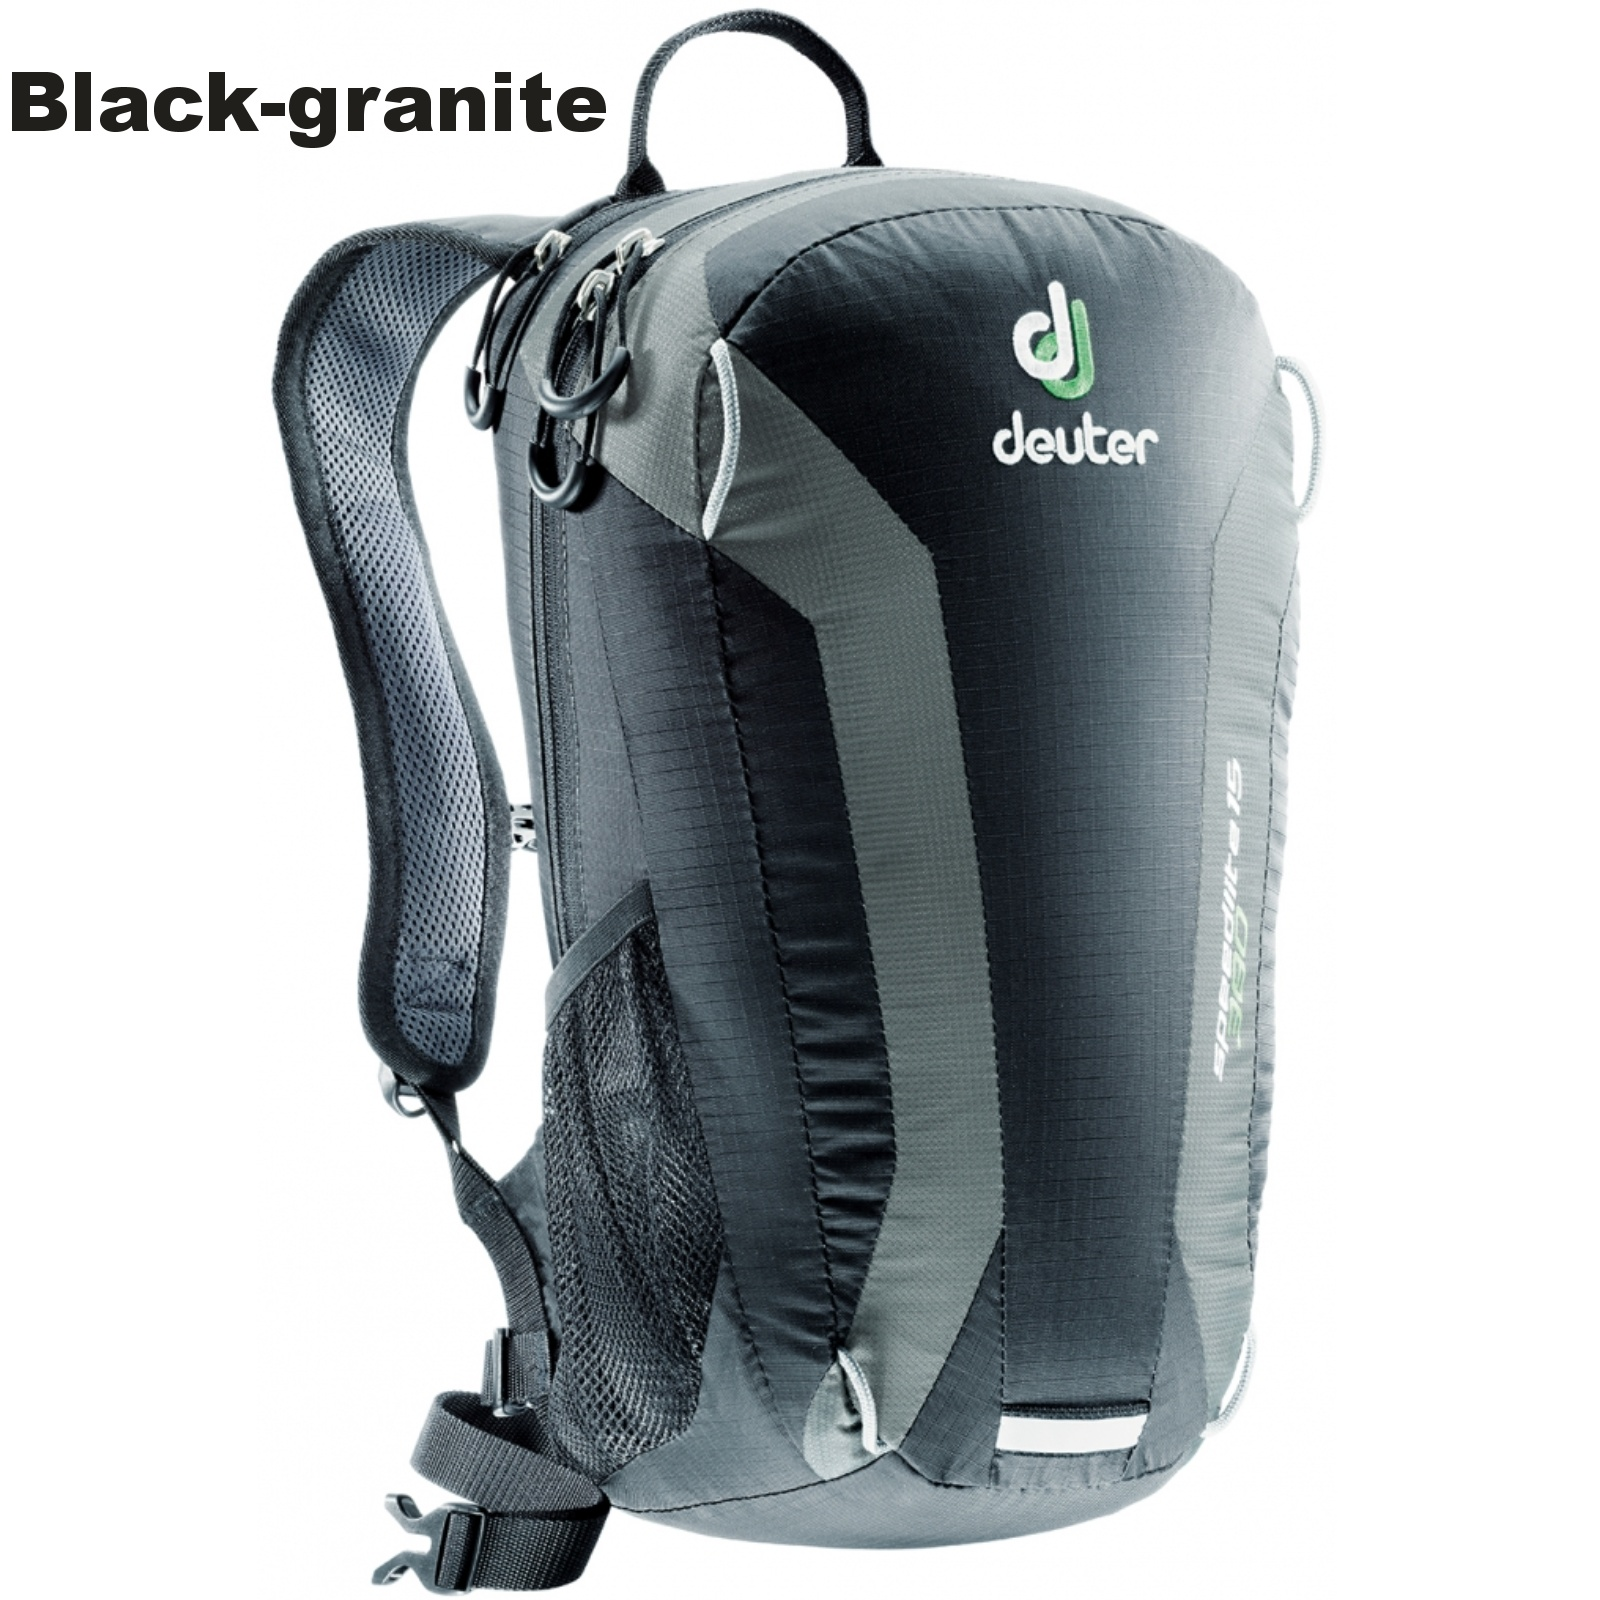 Batoh DEUTER Speed Lite 15 l - black-granite